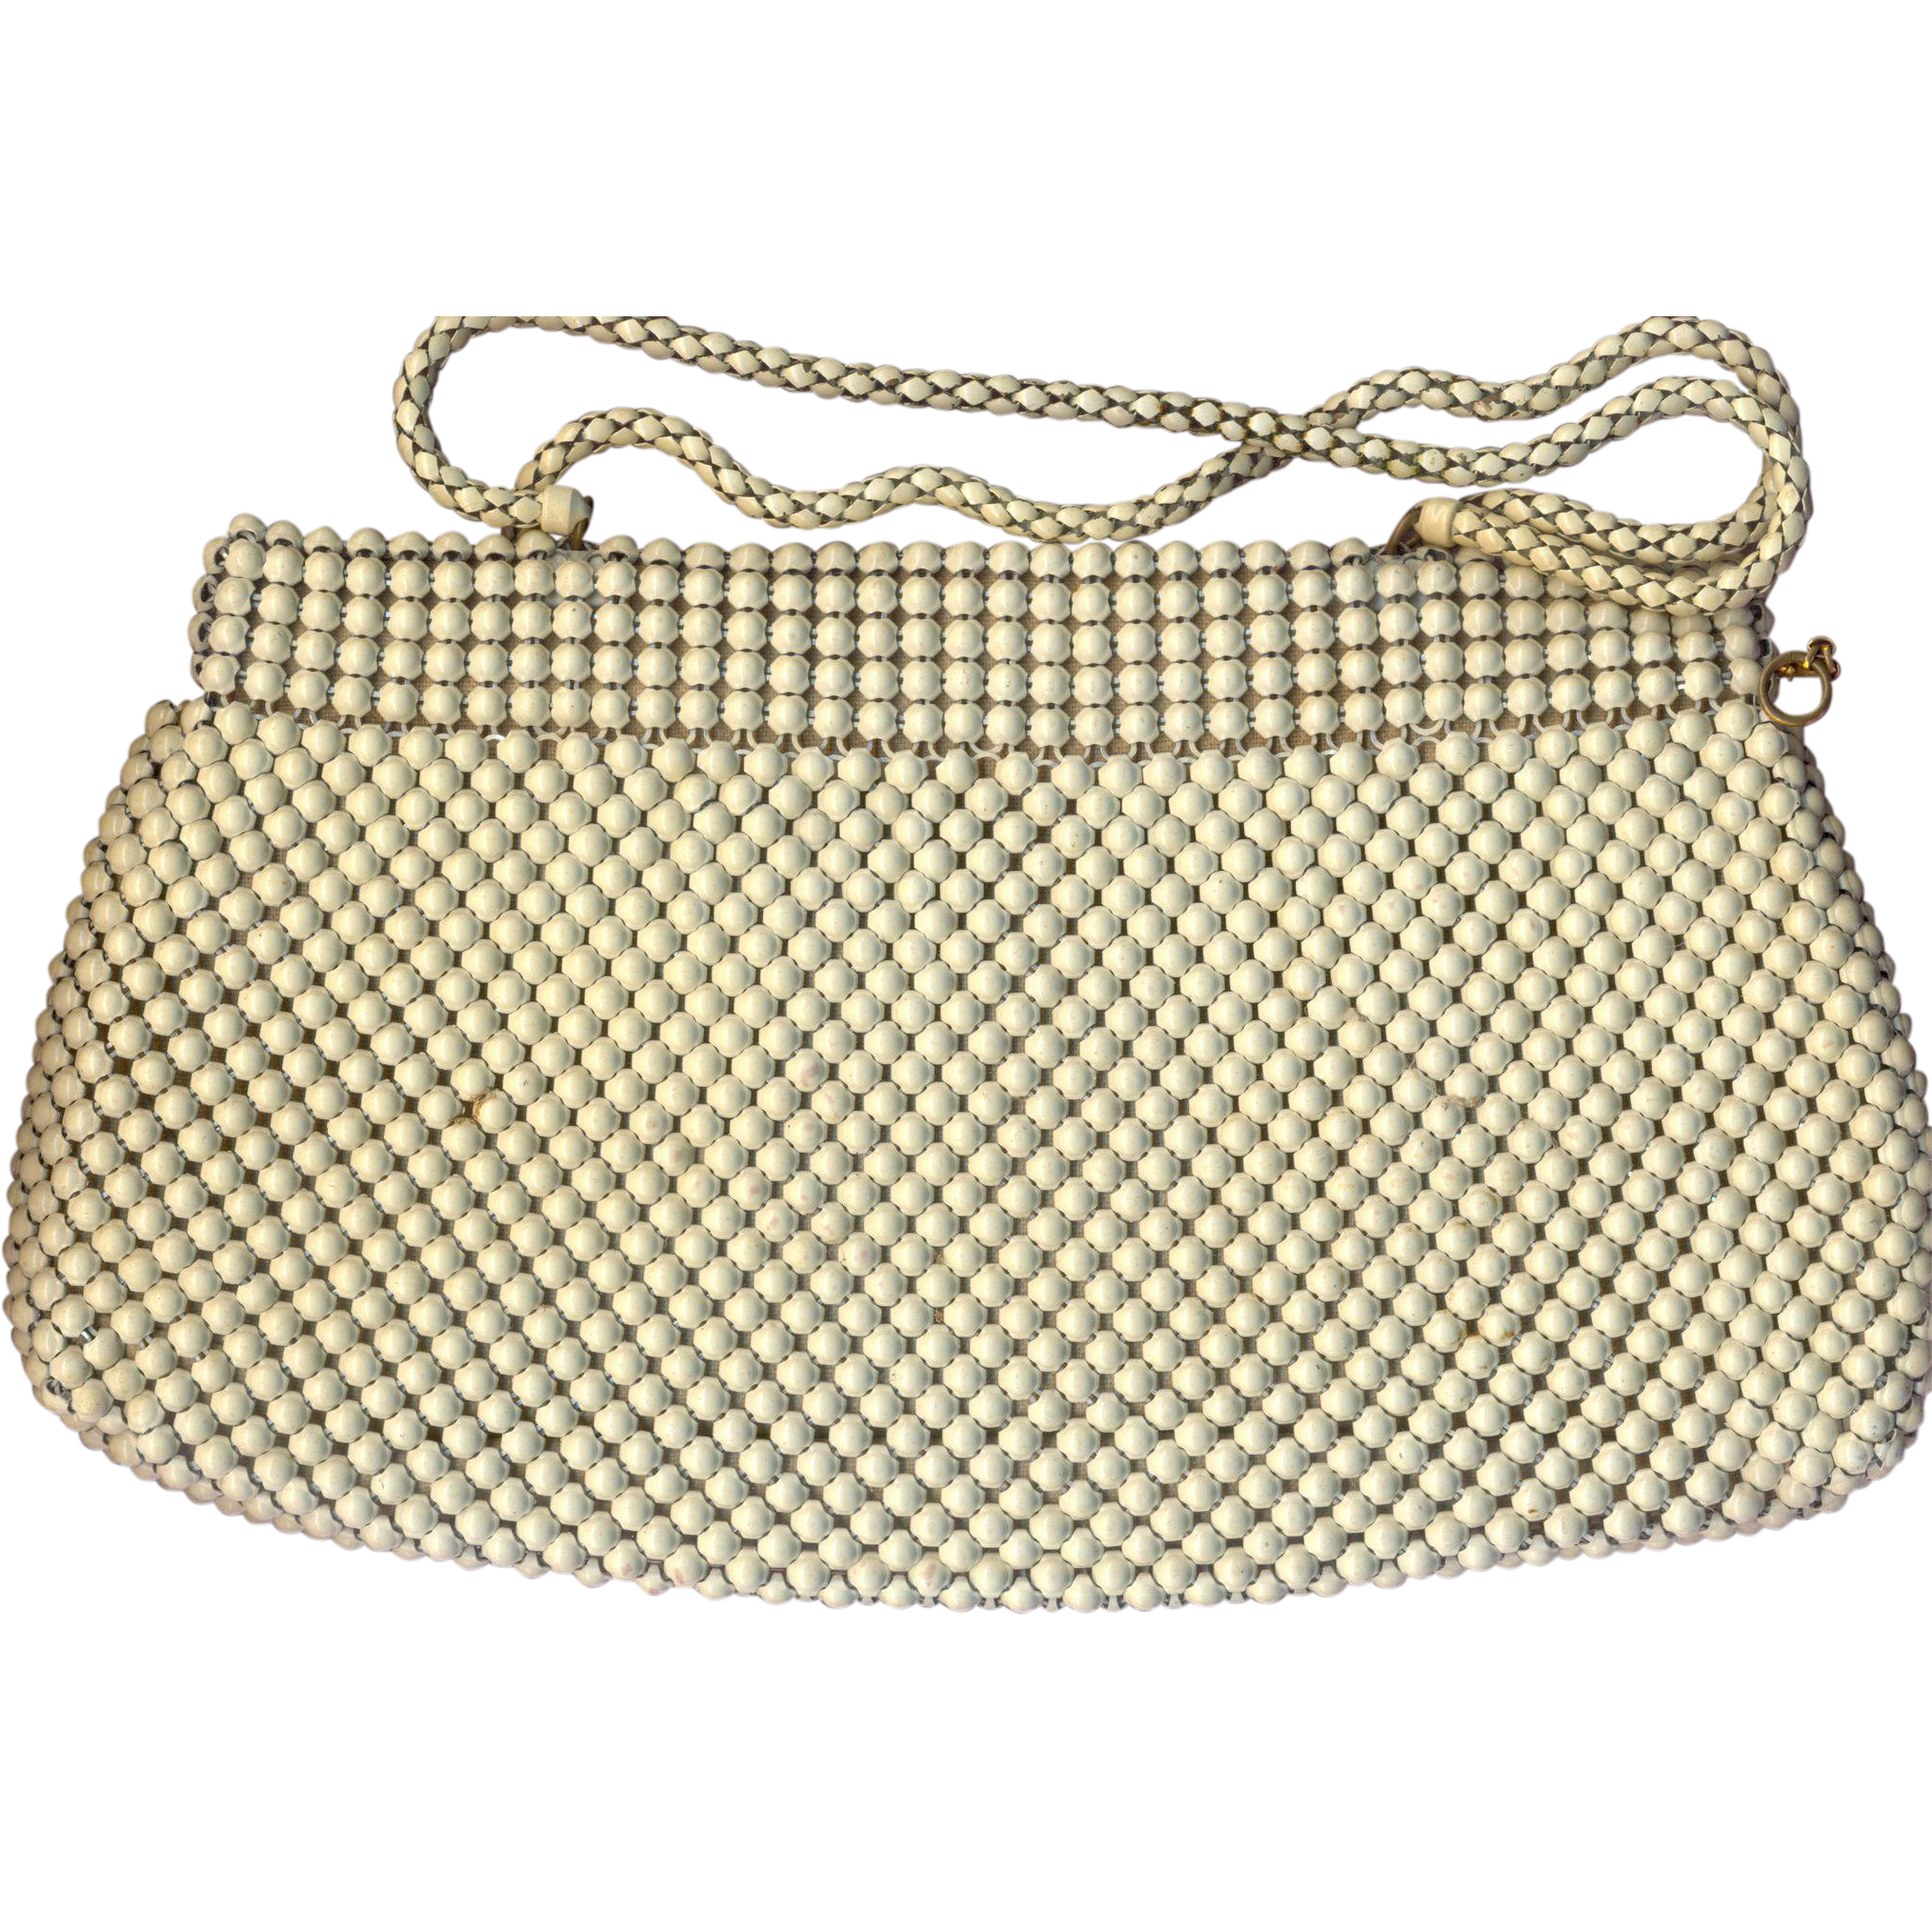 Whiting and Davis Alumesh Purse